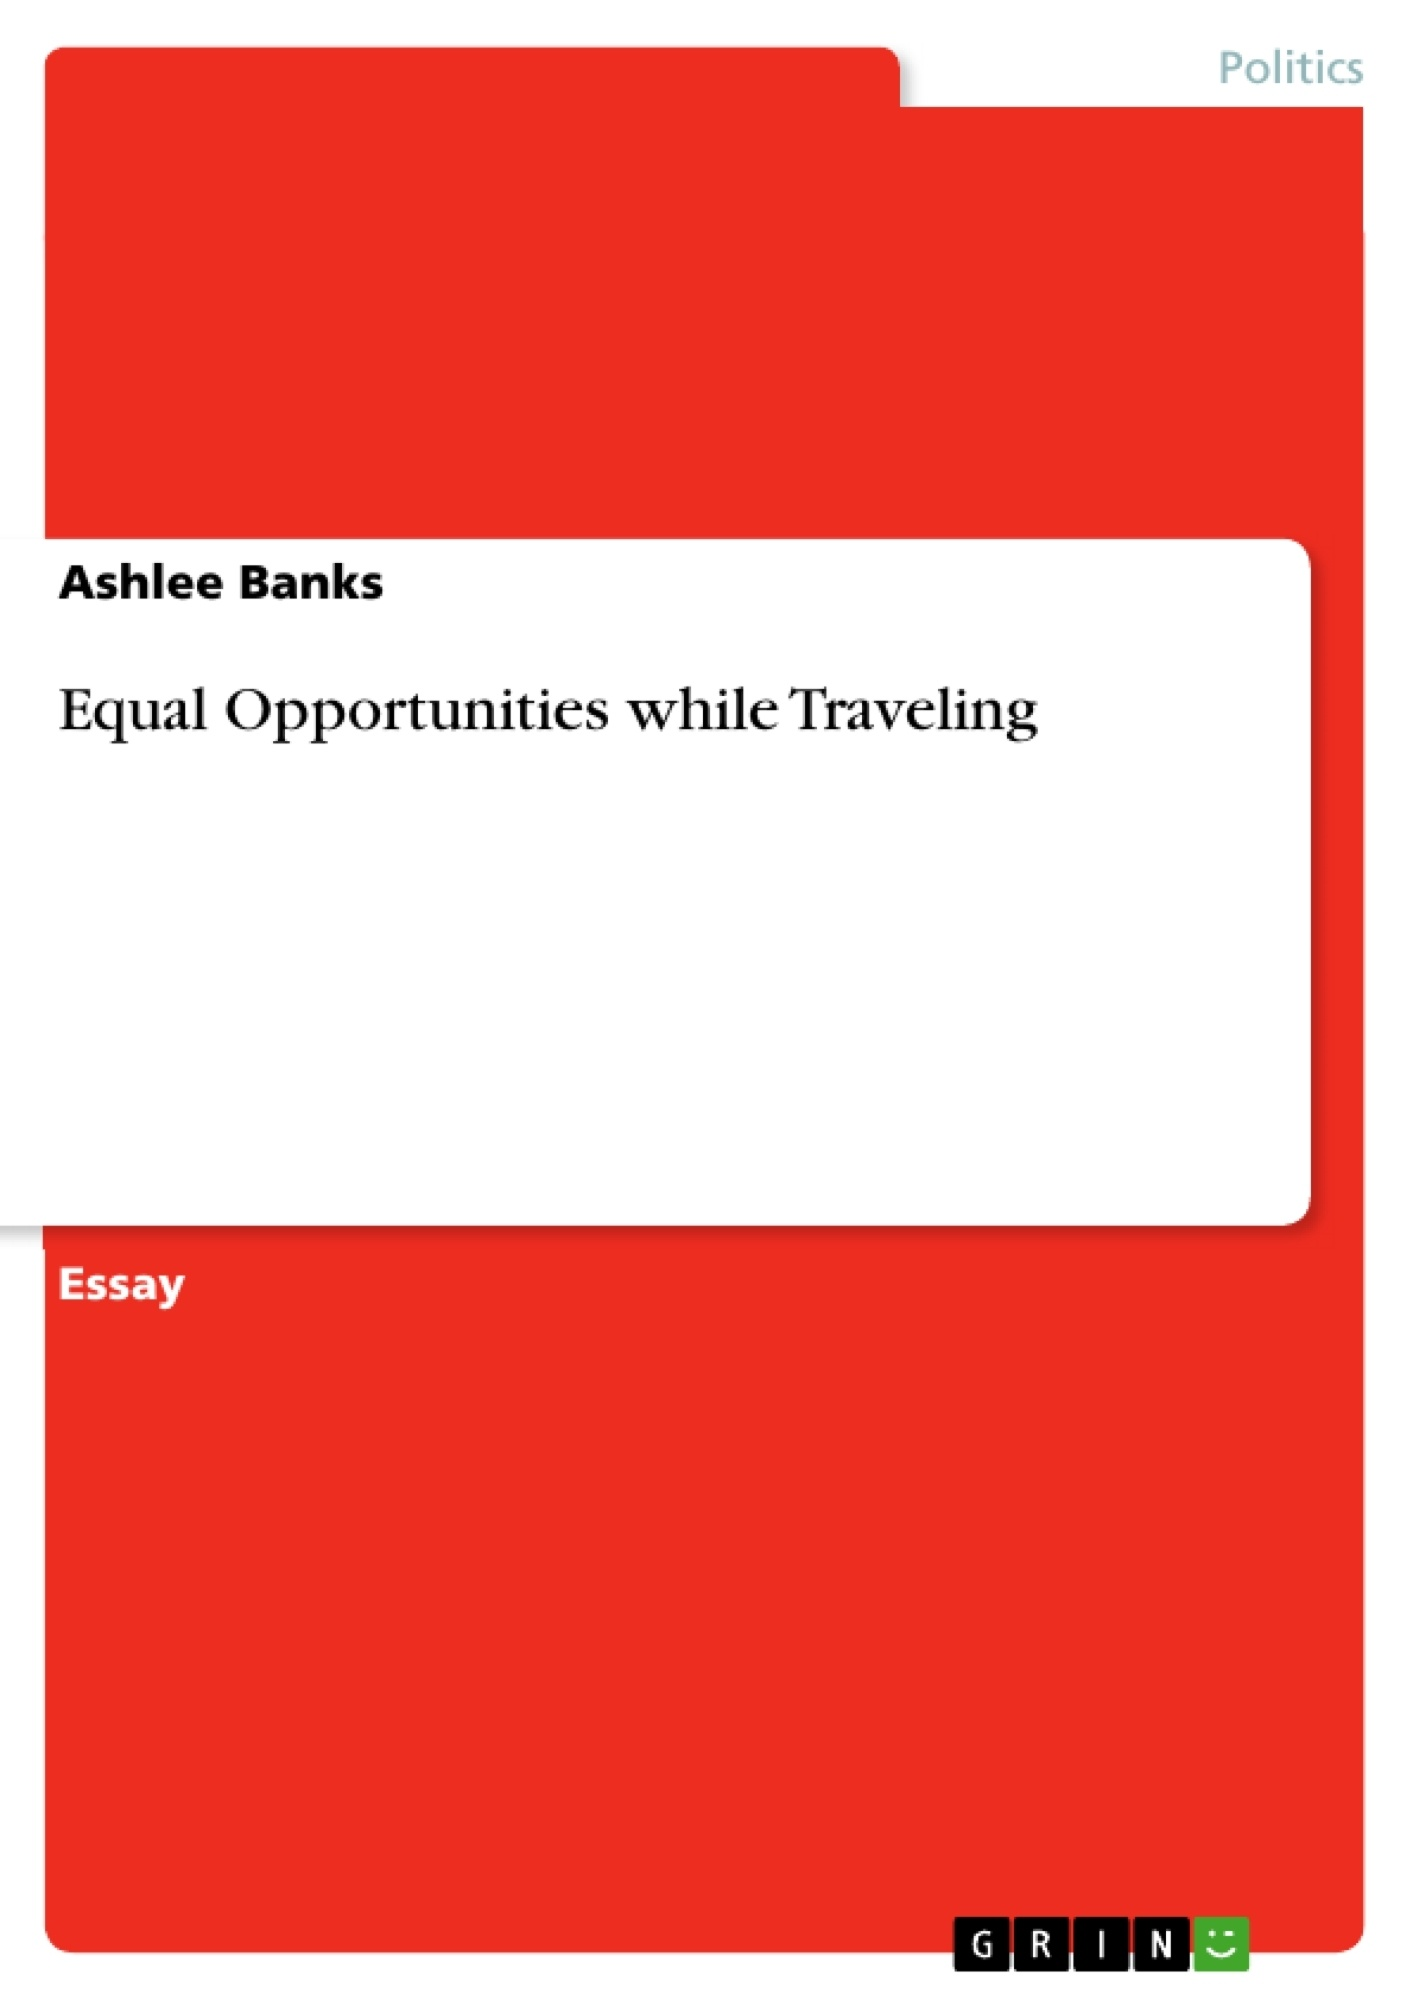 Title: Equal Opportunities while Traveling